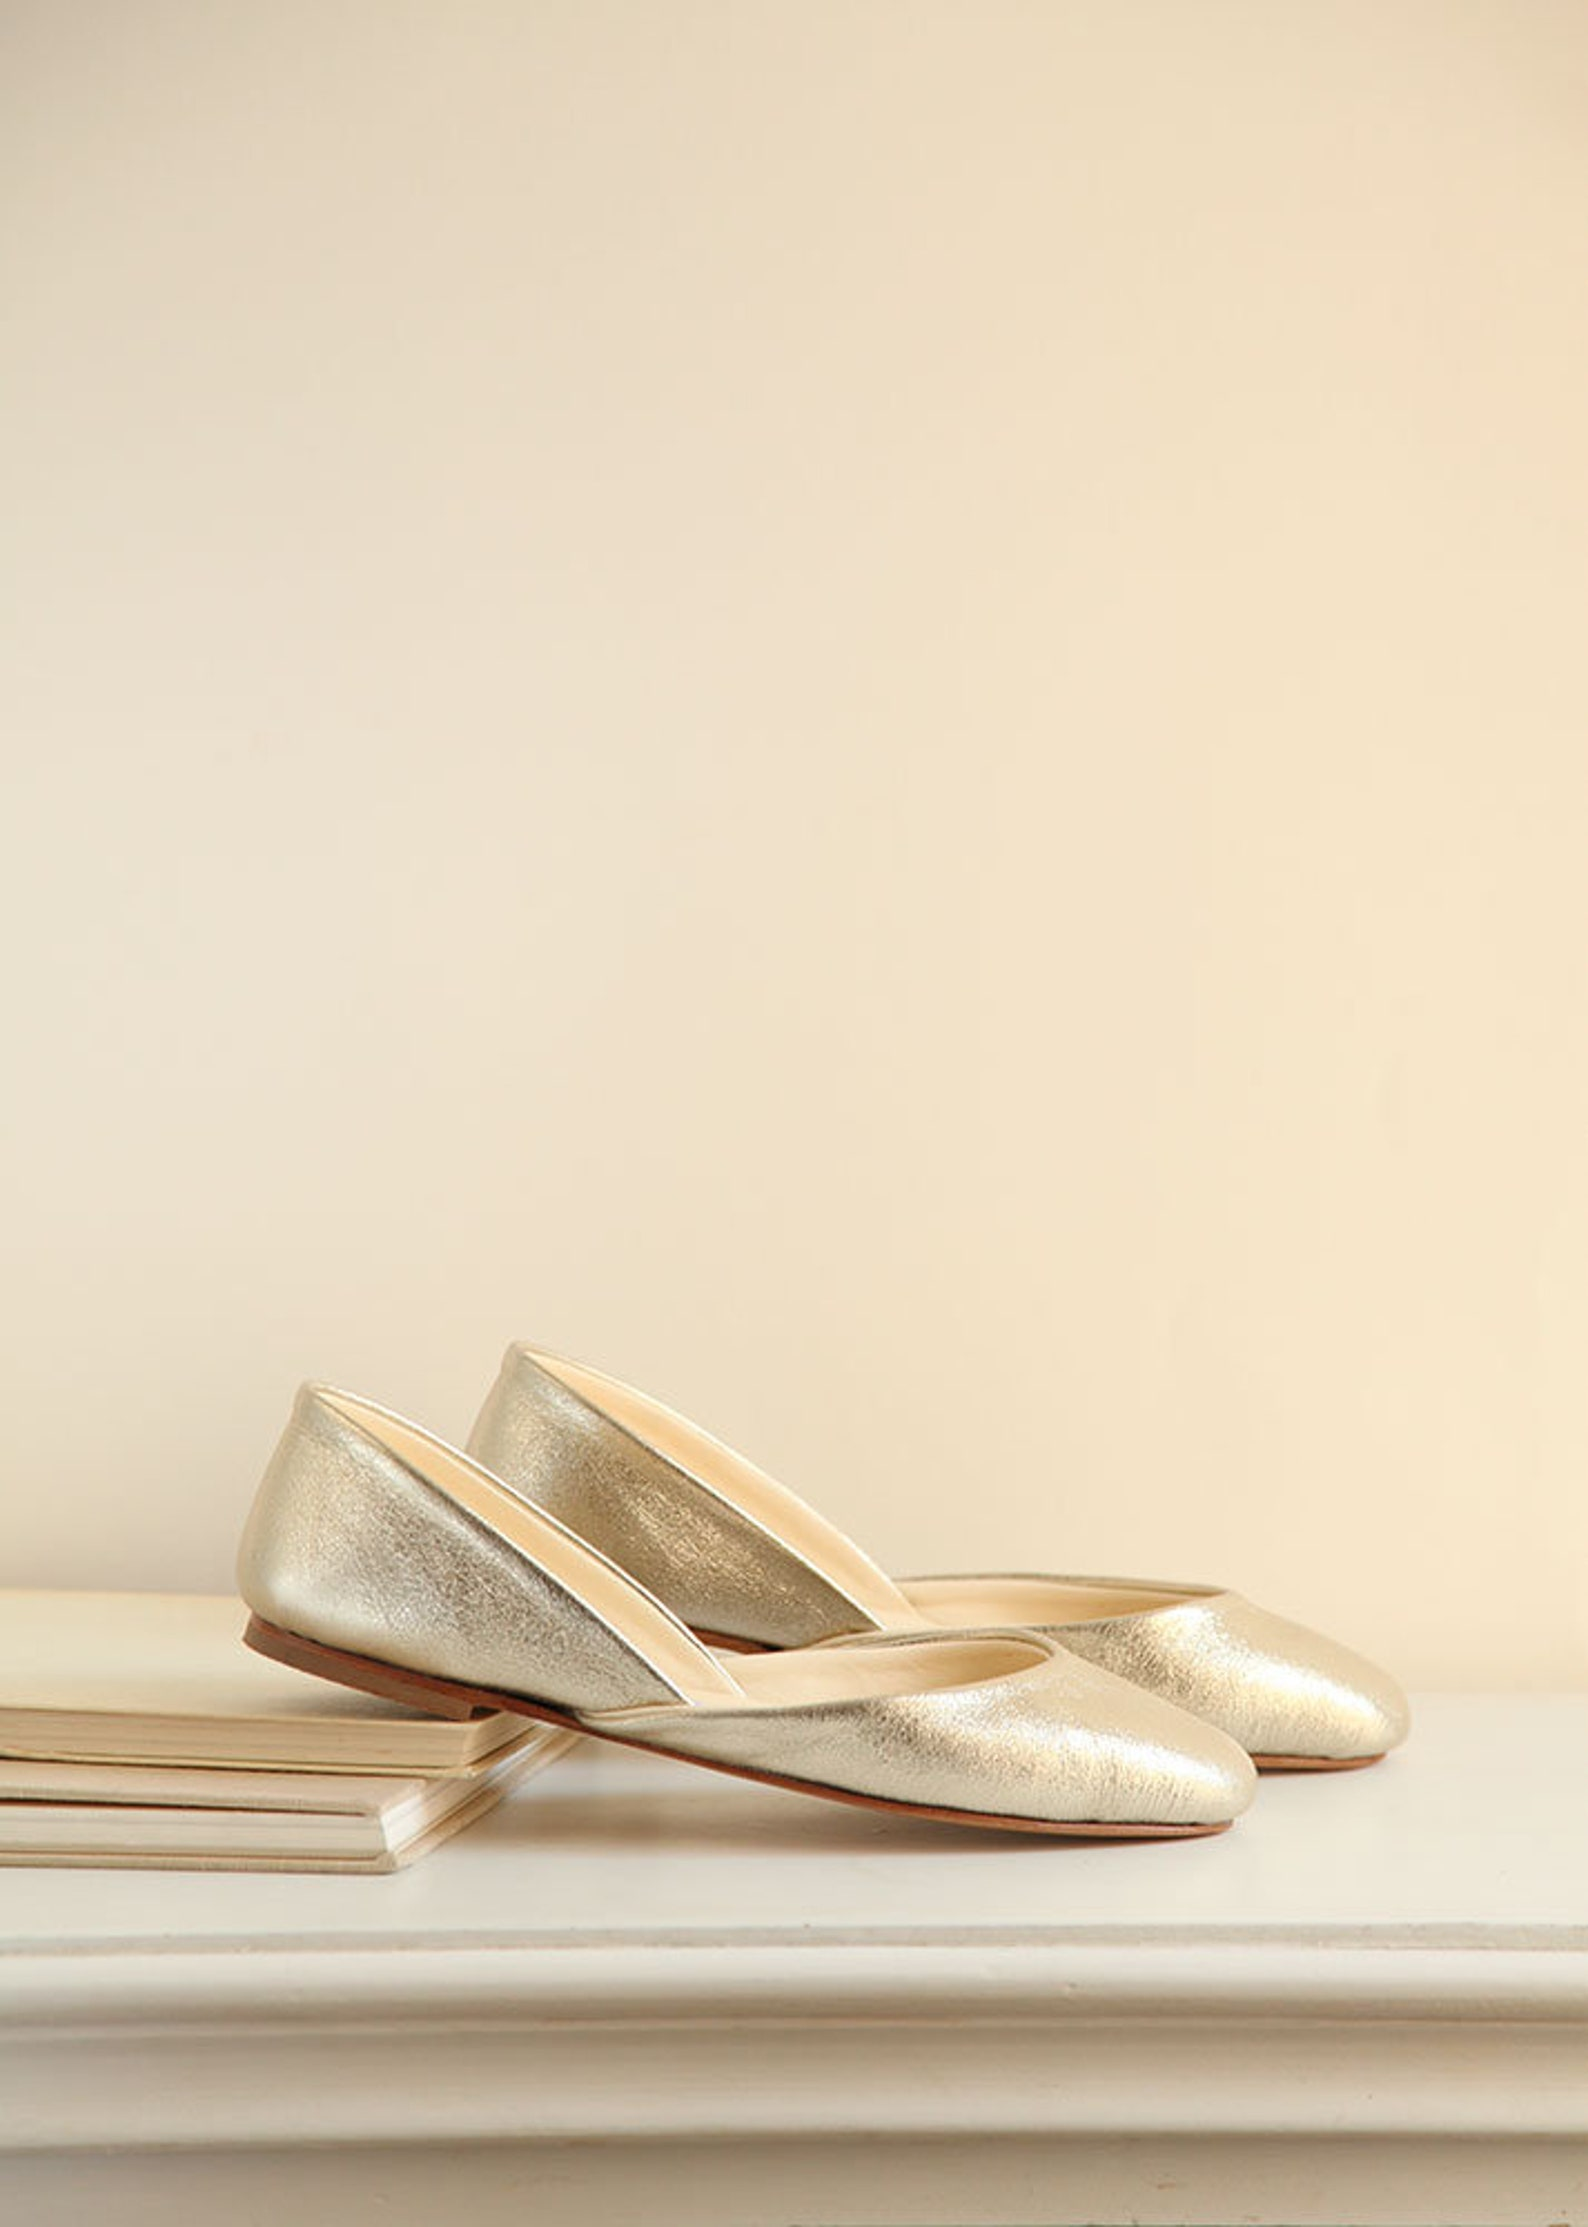 the sparkle gold ballet flats | wedding shoes | classic model | standard width | sparkle gold | ready to ship